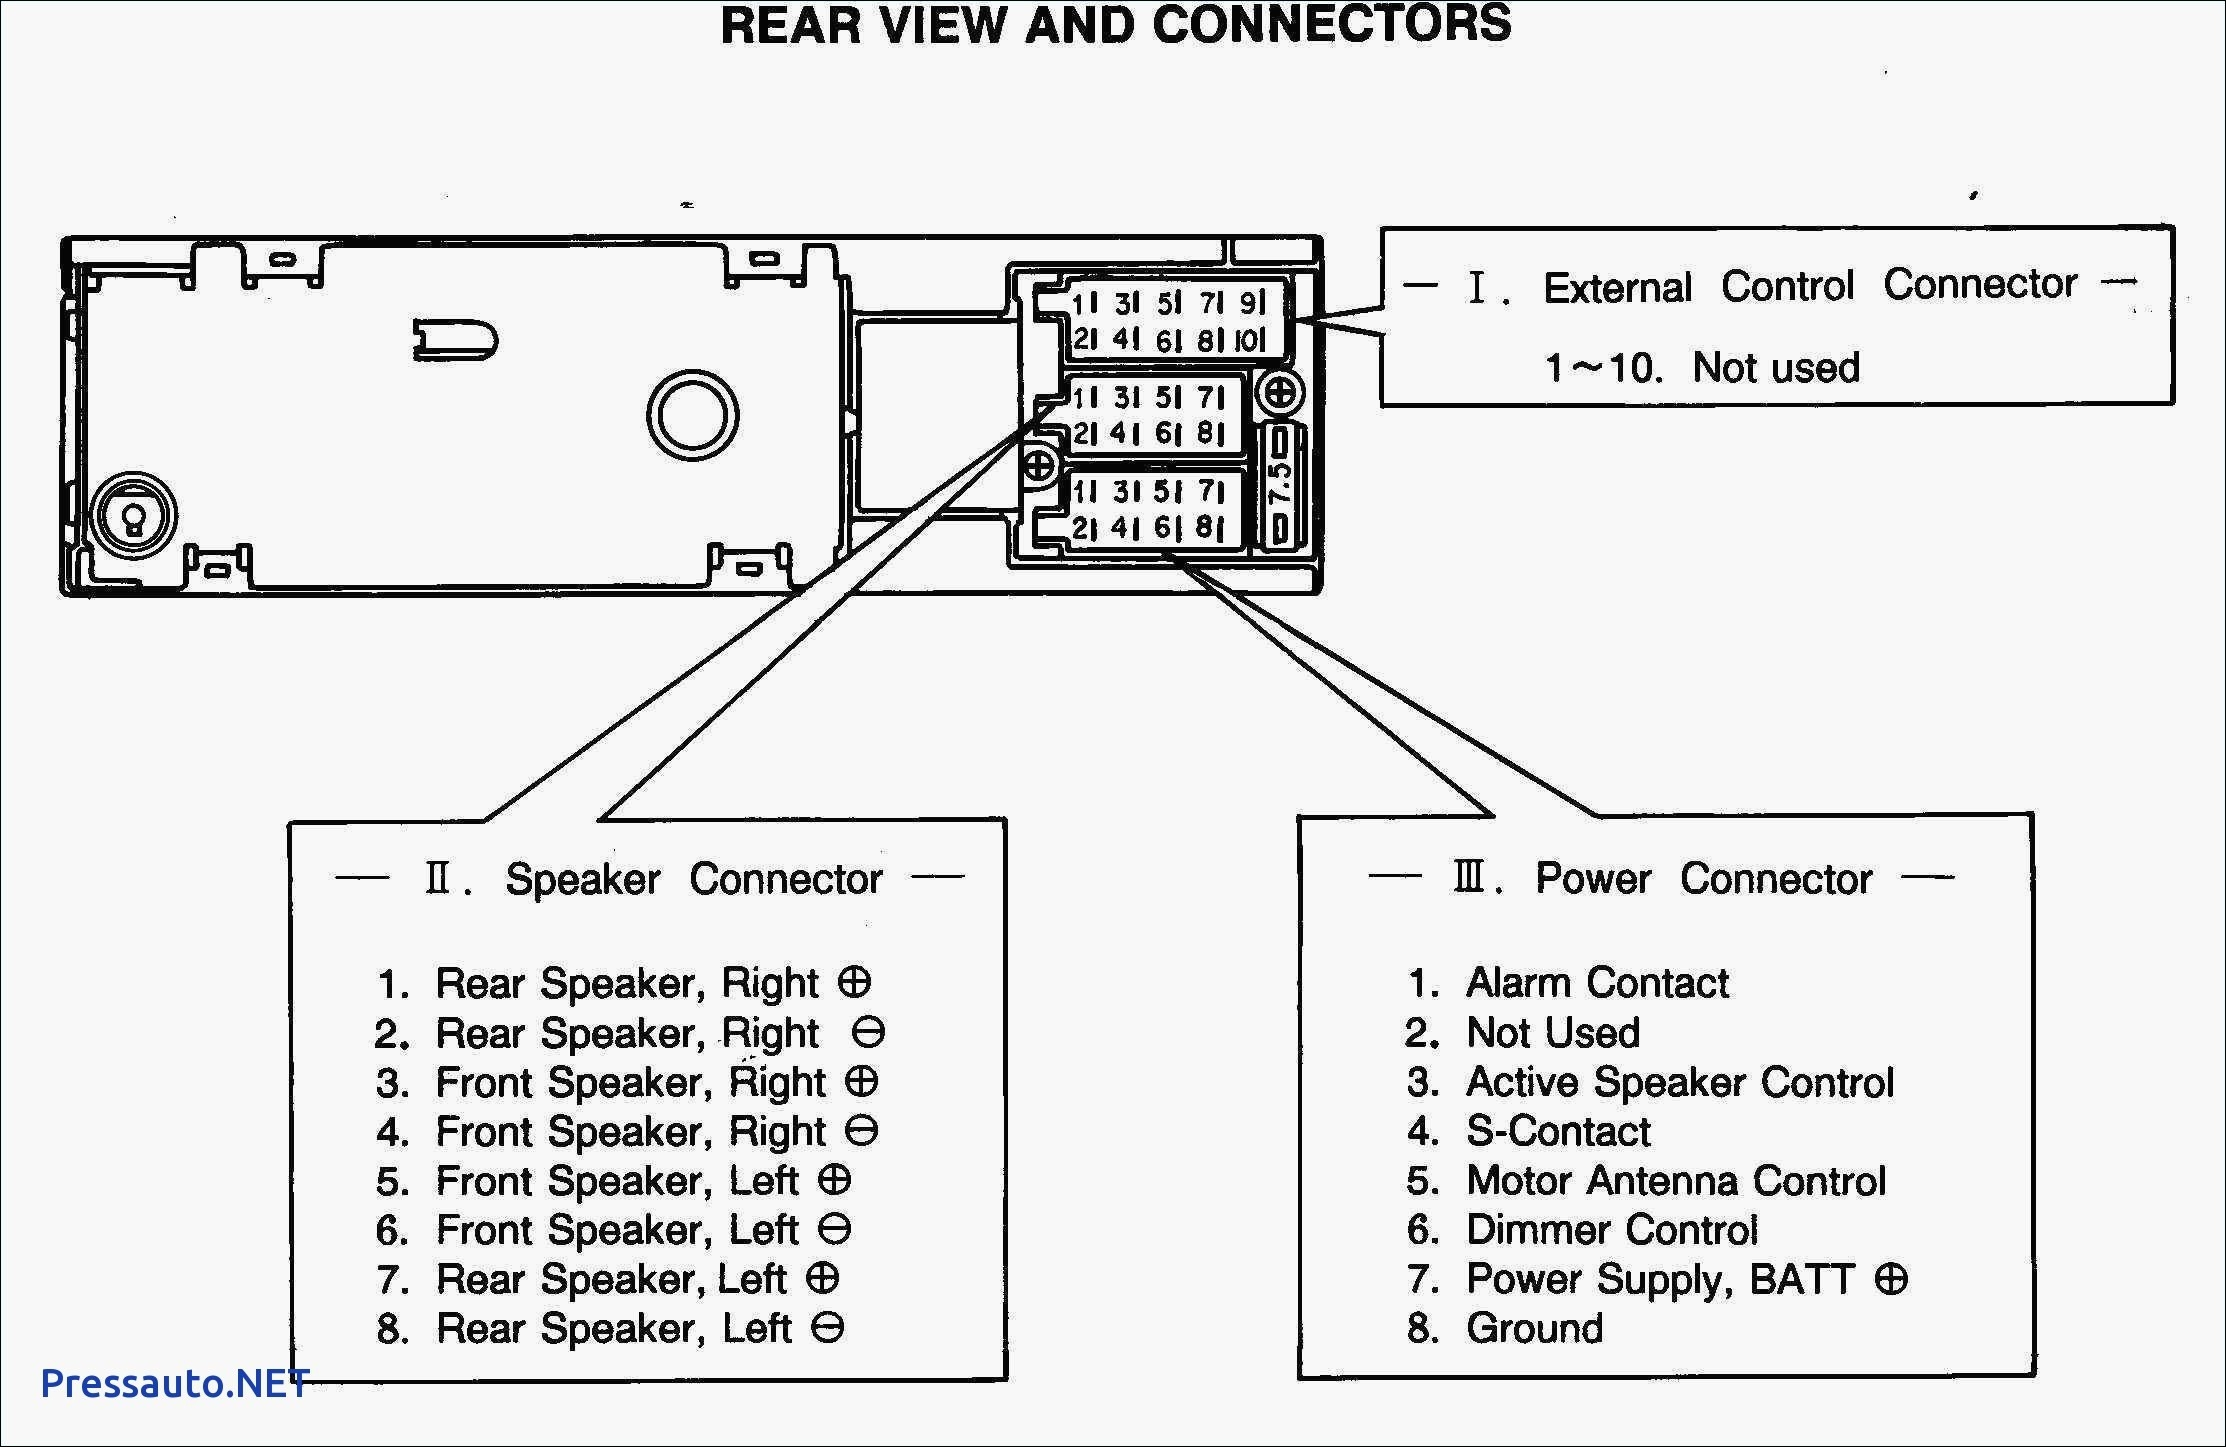 toyota matrix radio wiring diagram free wiring diagram. Black Bedroom Furniture Sets. Home Design Ideas